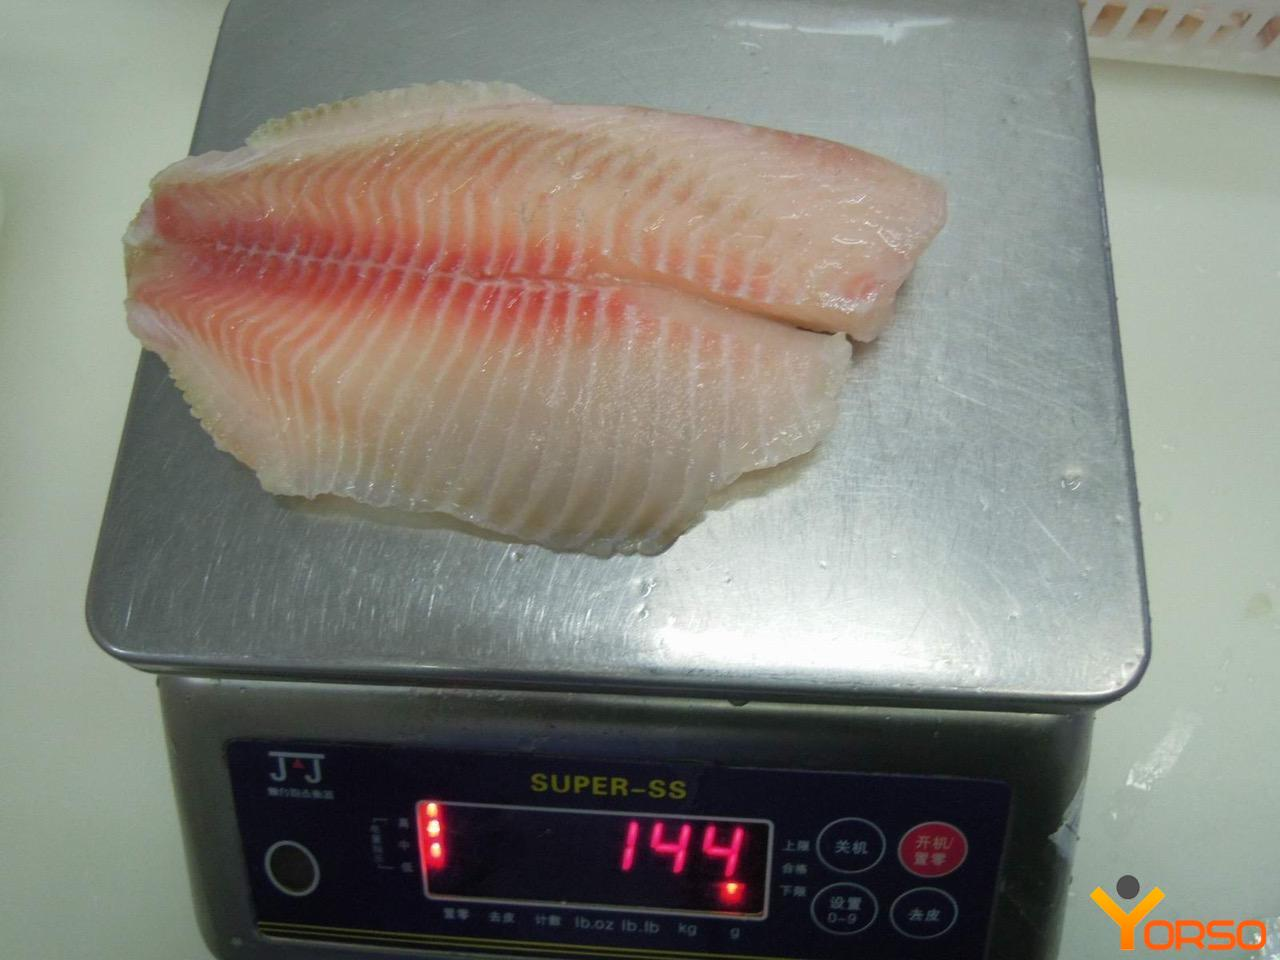 Nile Tilapia Frozen Fillet 5 7 7 9 1 10